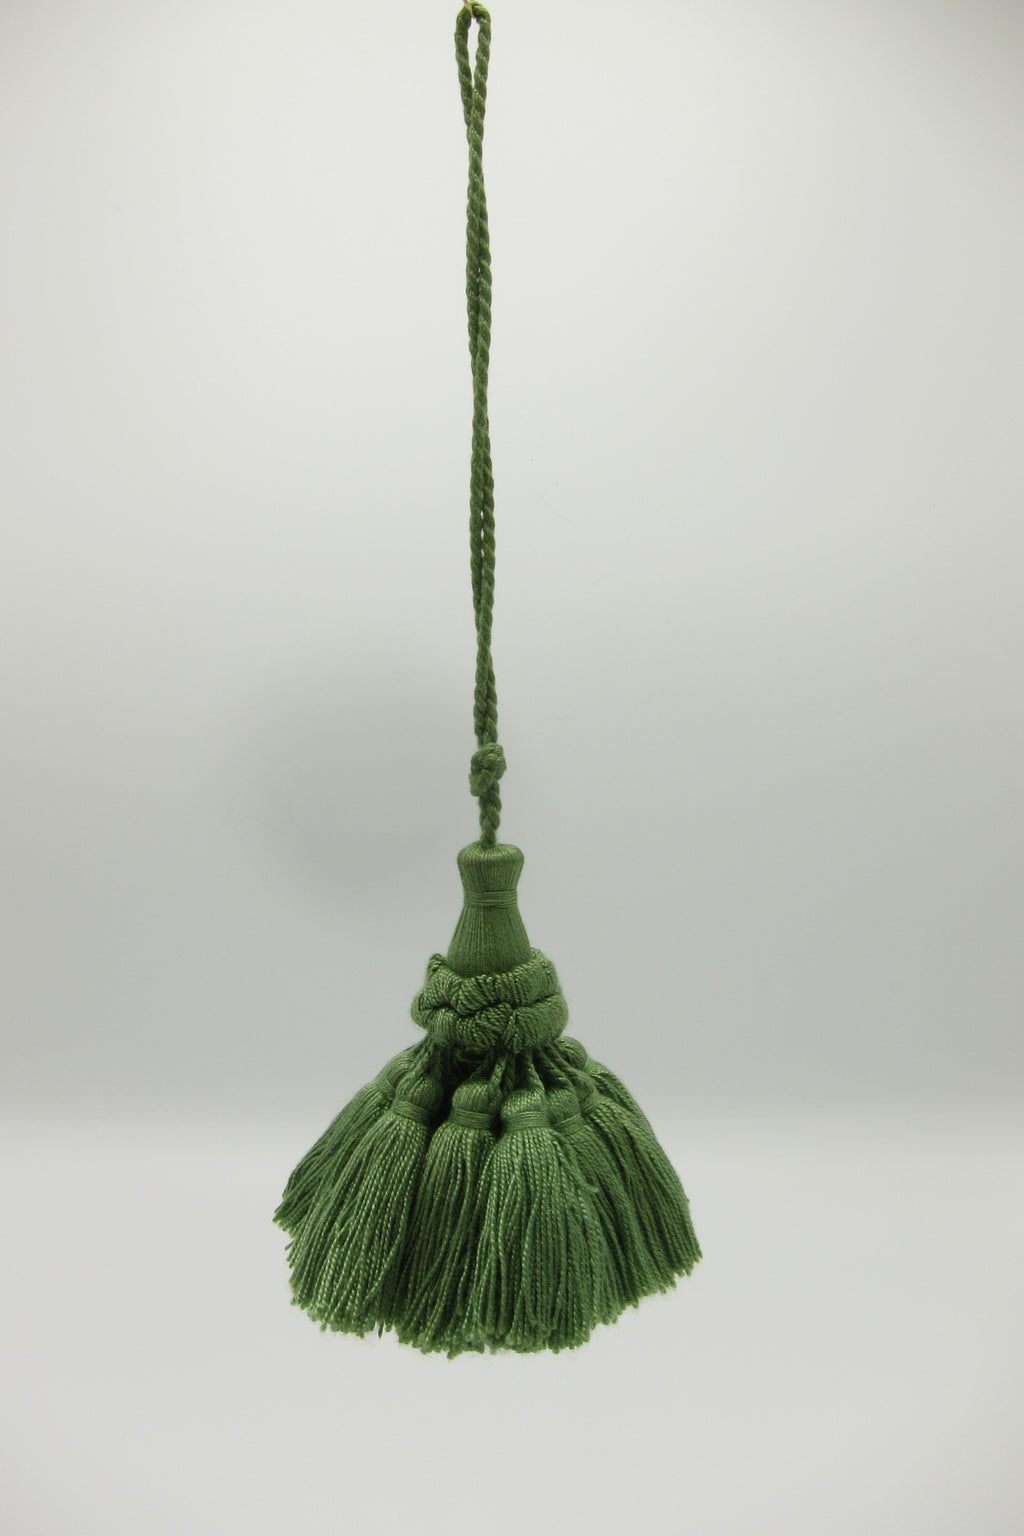 green vintage decorative tassel